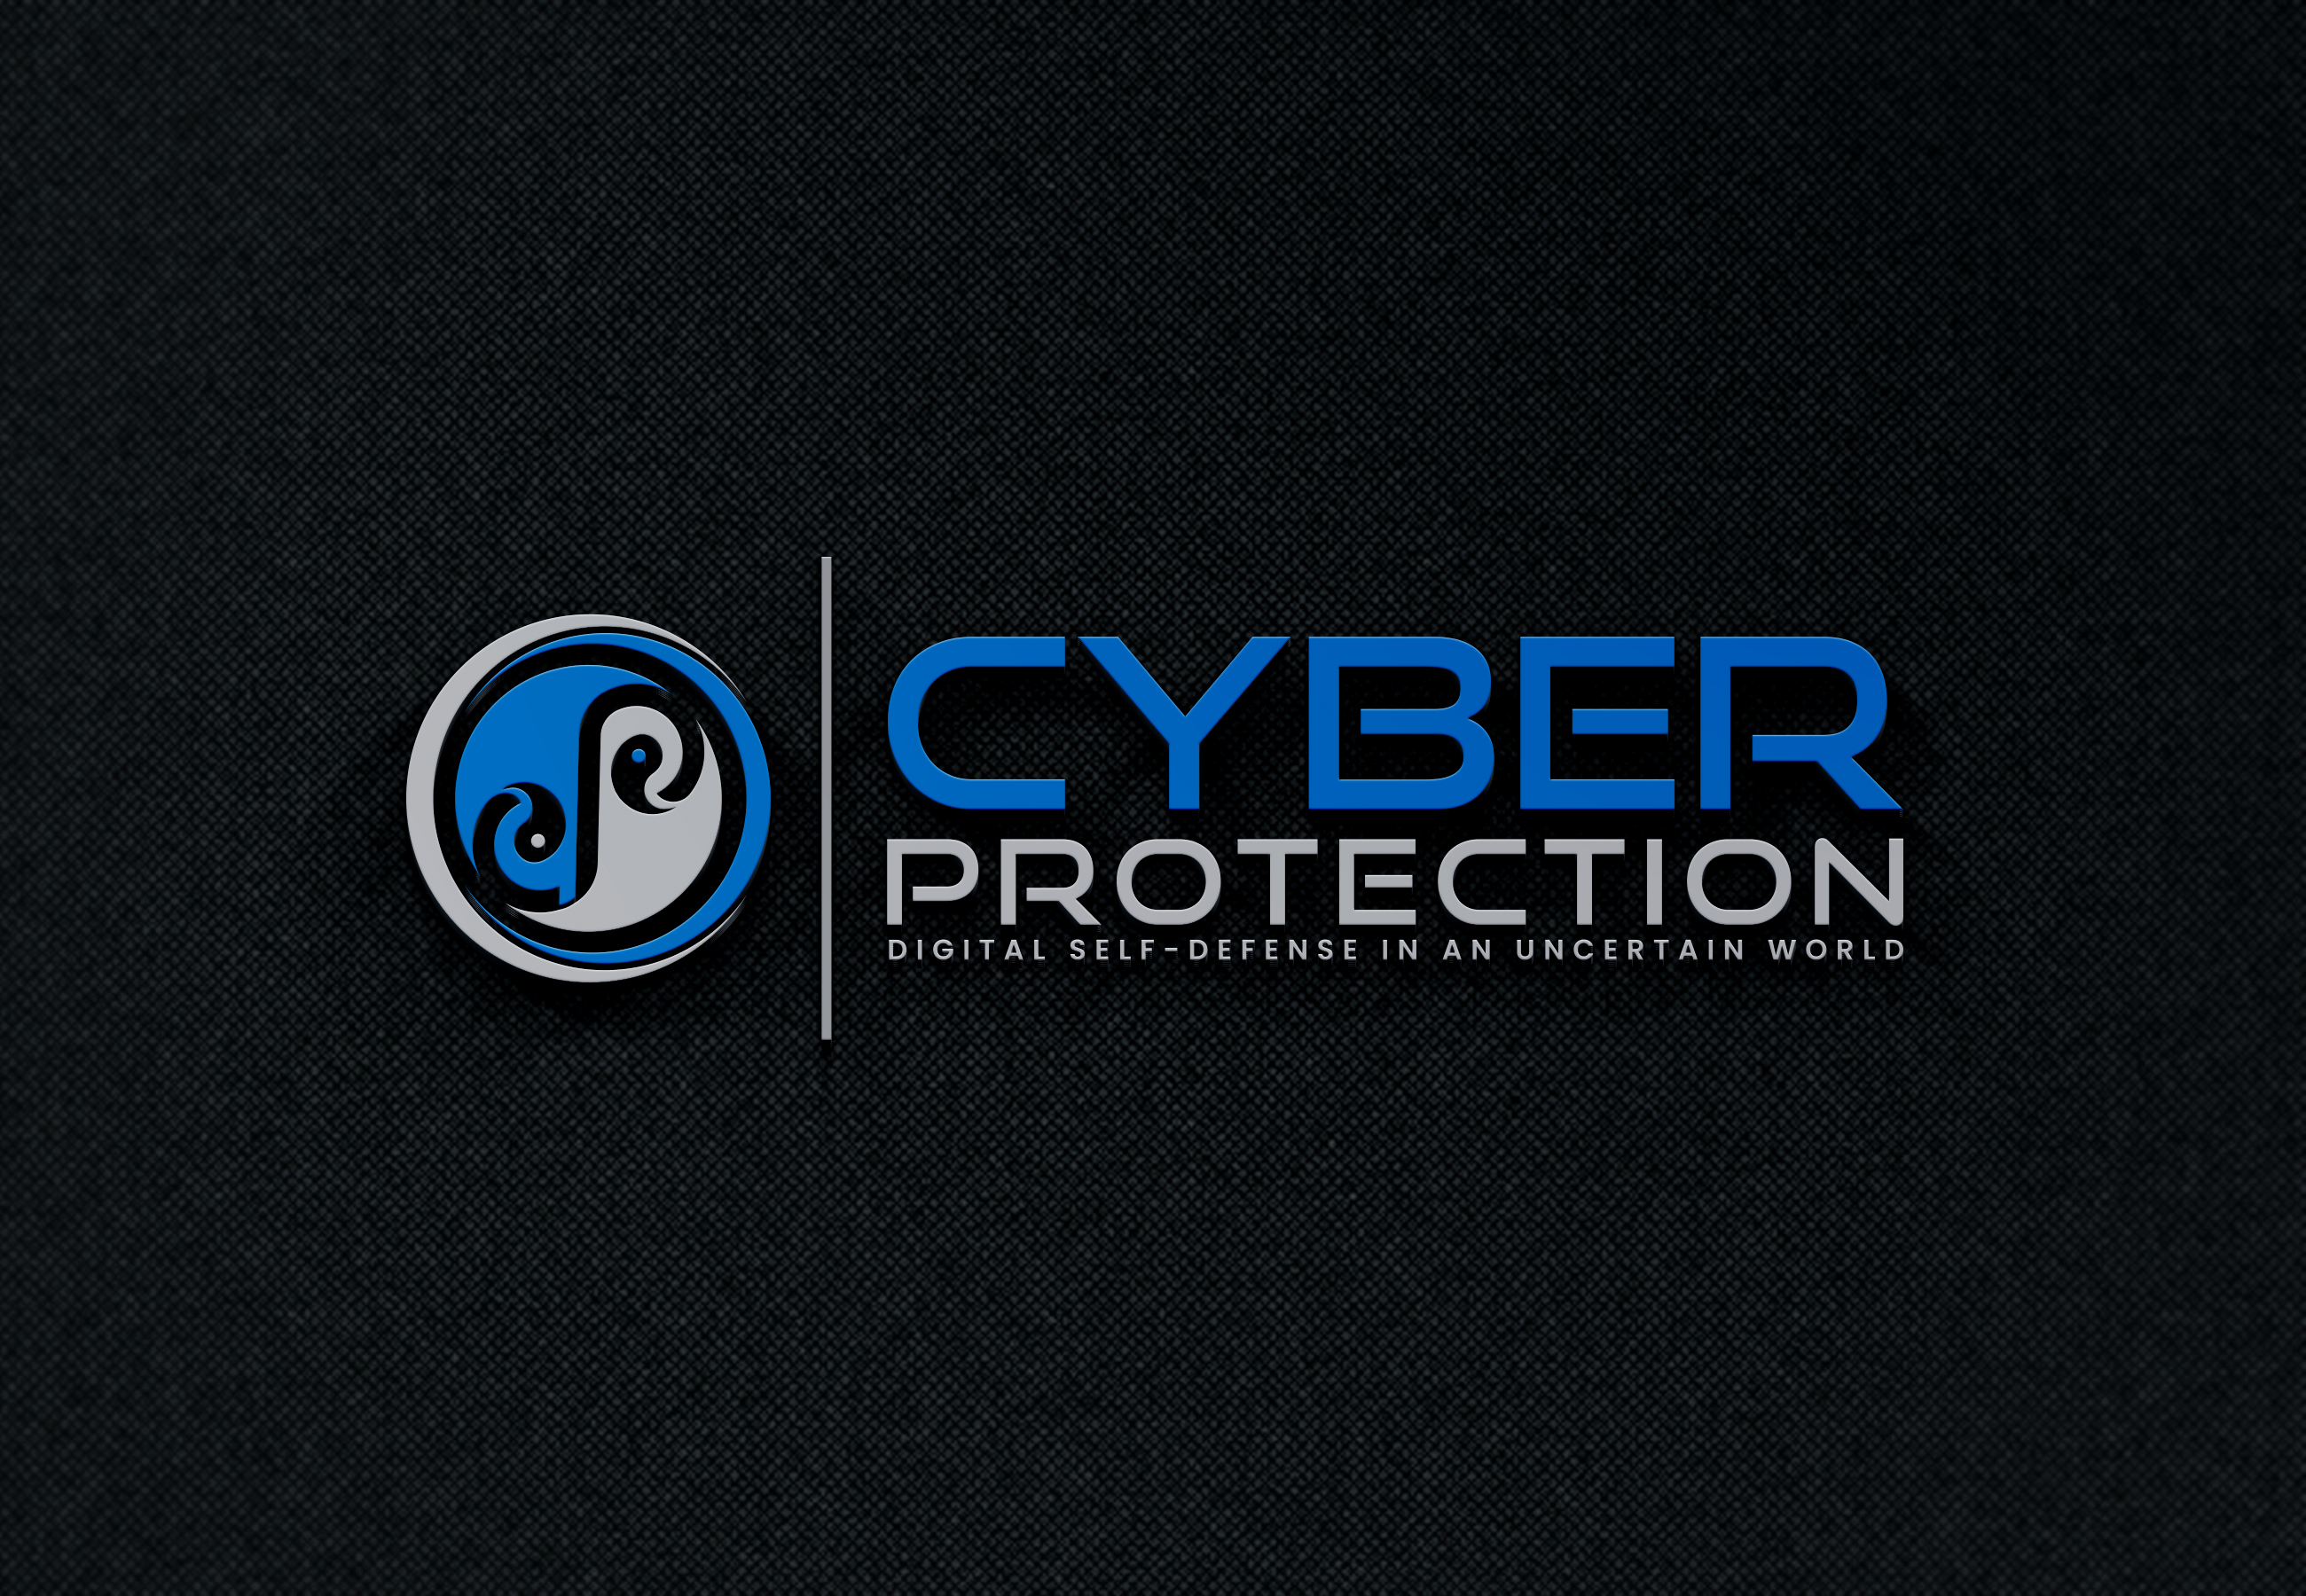 Cyber Protection Services - RPO